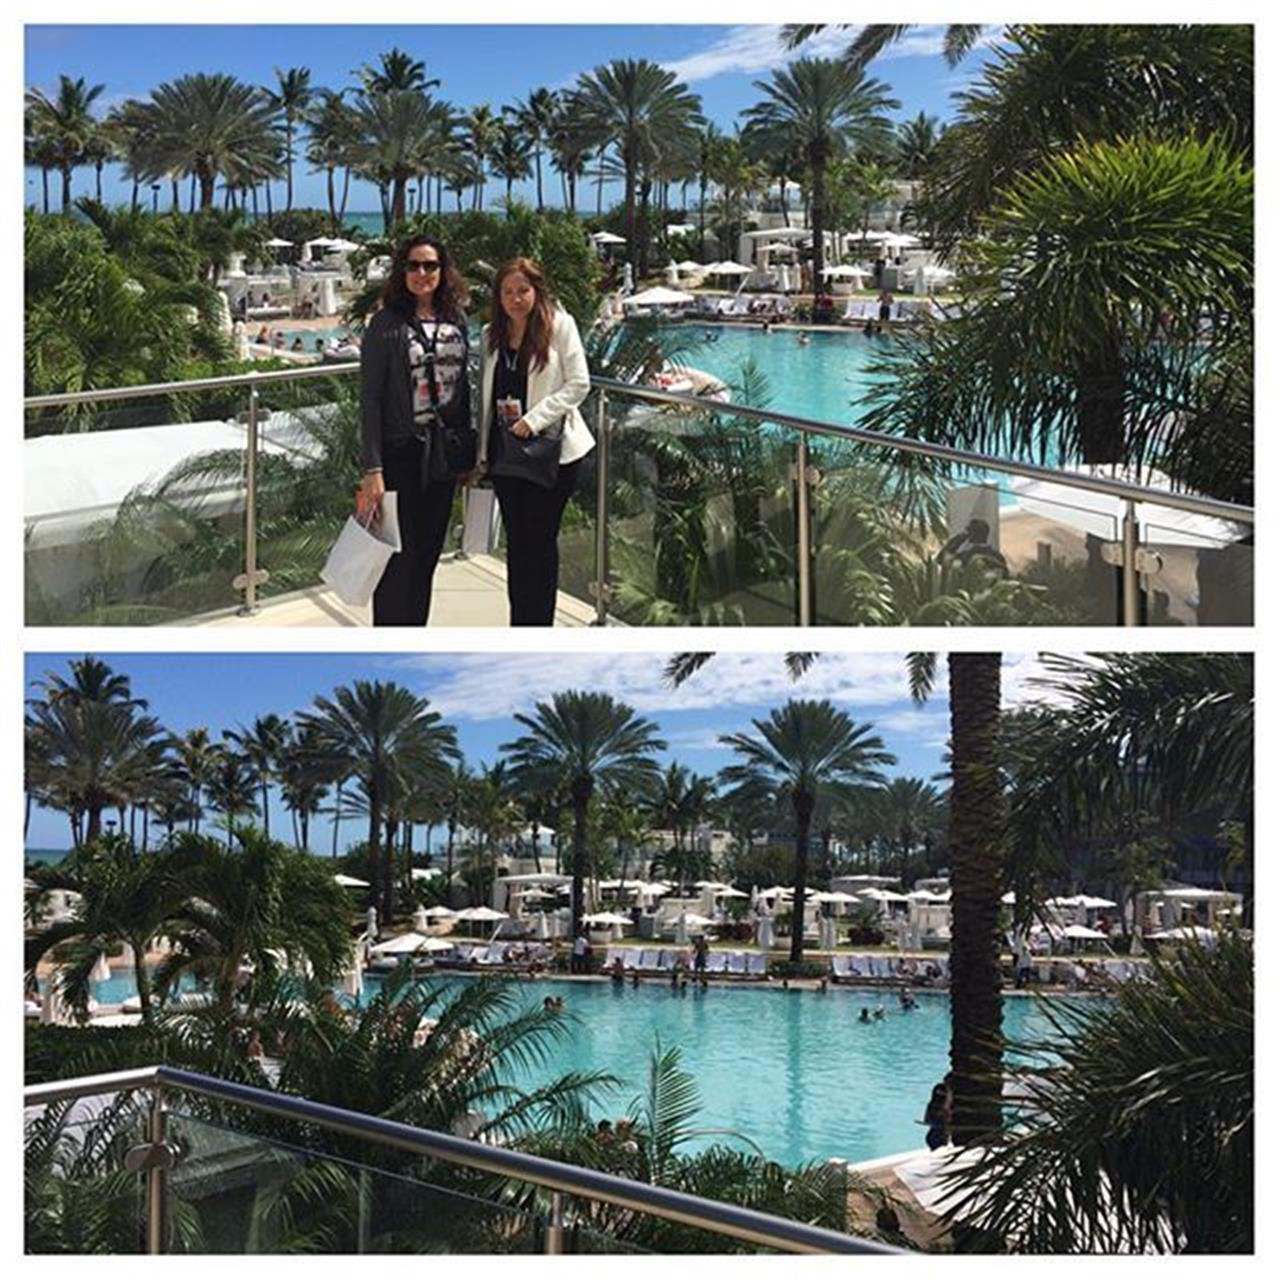 #LeadingRELocal #fountainbleau #miamibeach #myhomeyourvacation